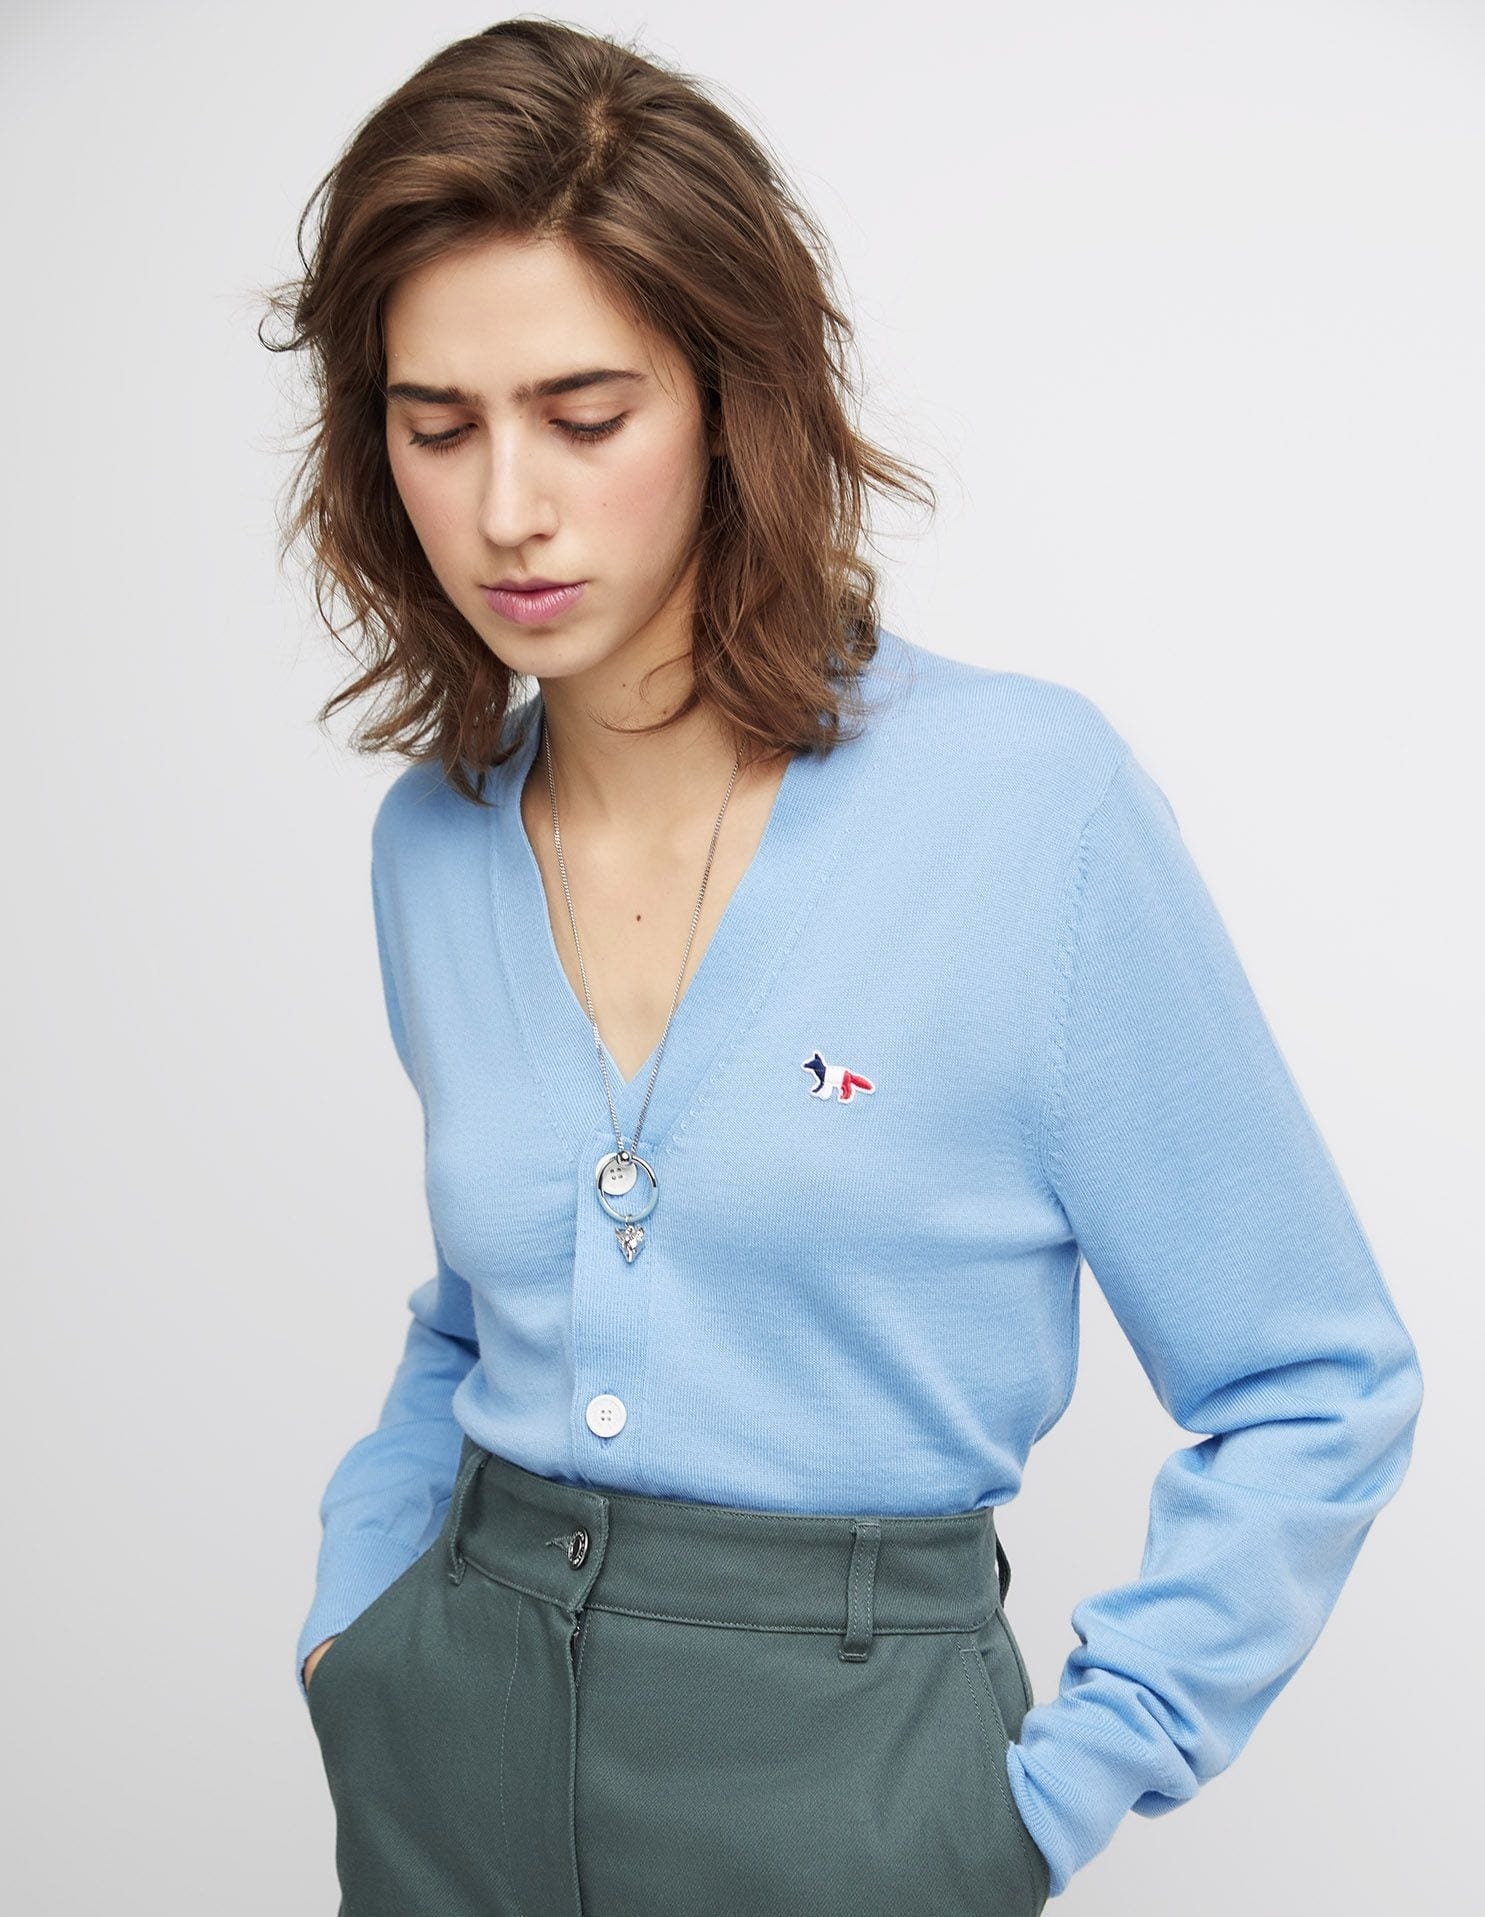 Maison Kitsuné: Up to 40% off sale styles!